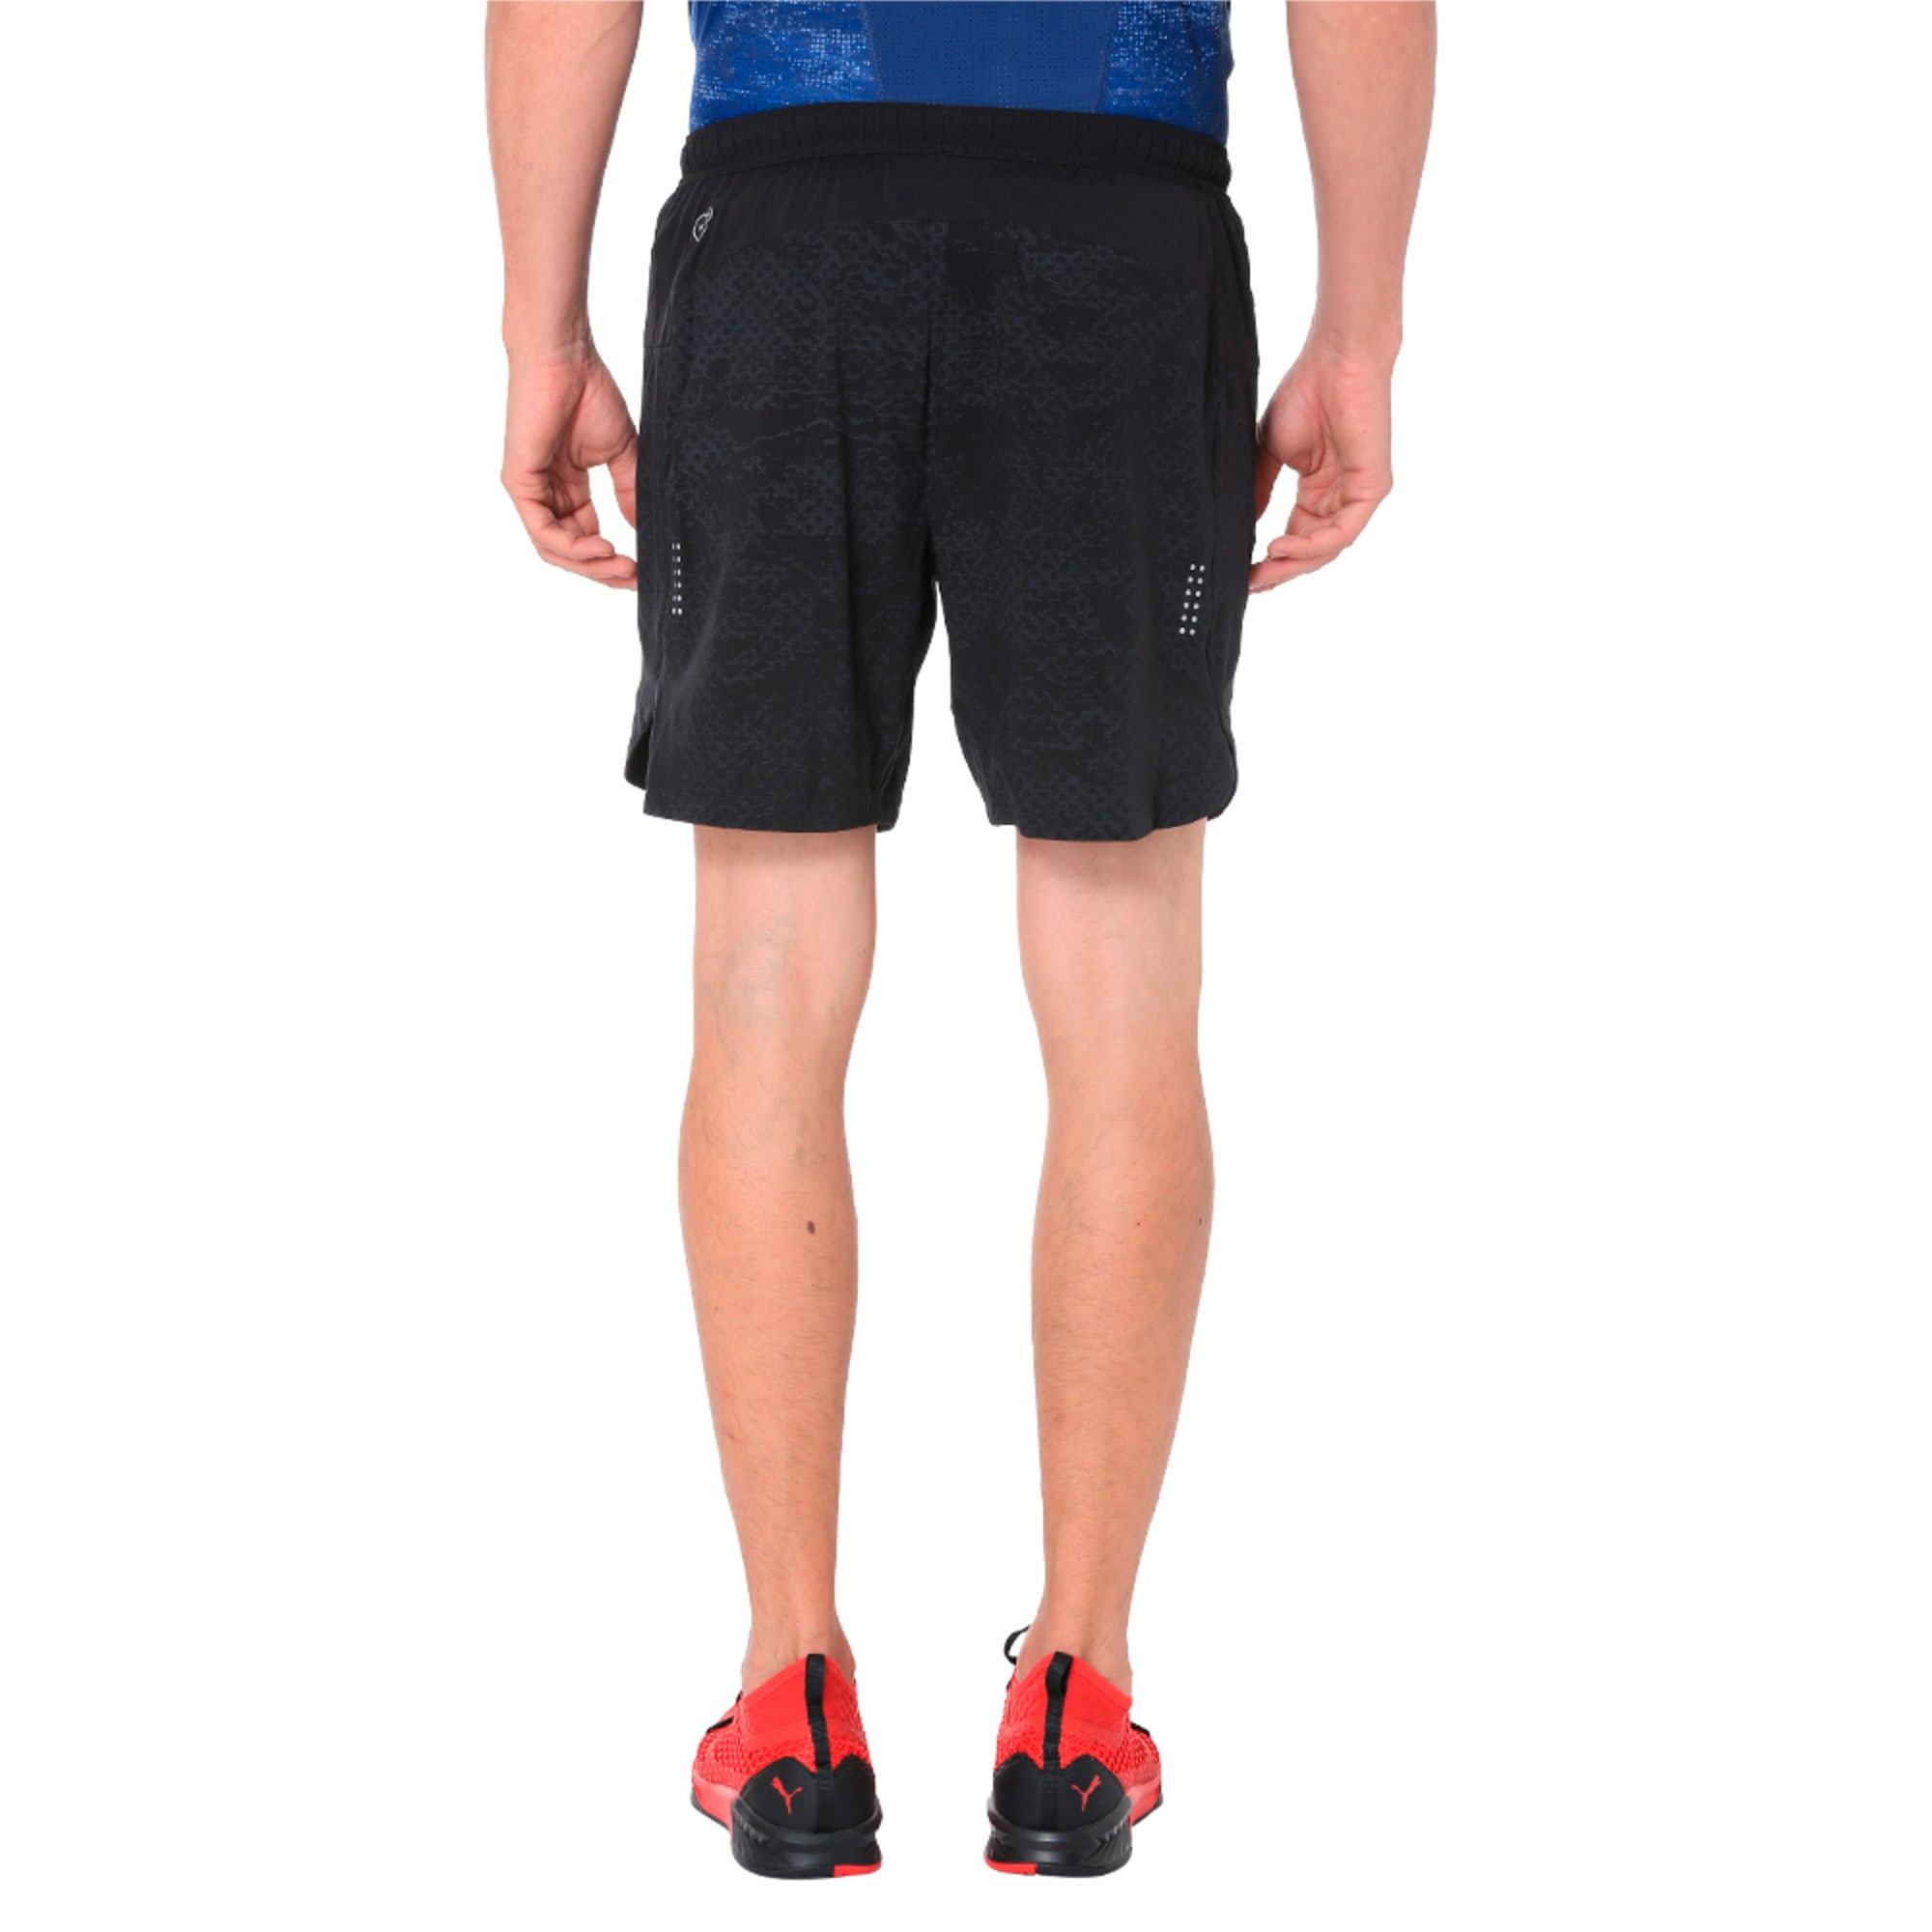 Thumbnail 1 of Pace 7'' Graphic Men's Running Shorts, Puma Black, medium-IND